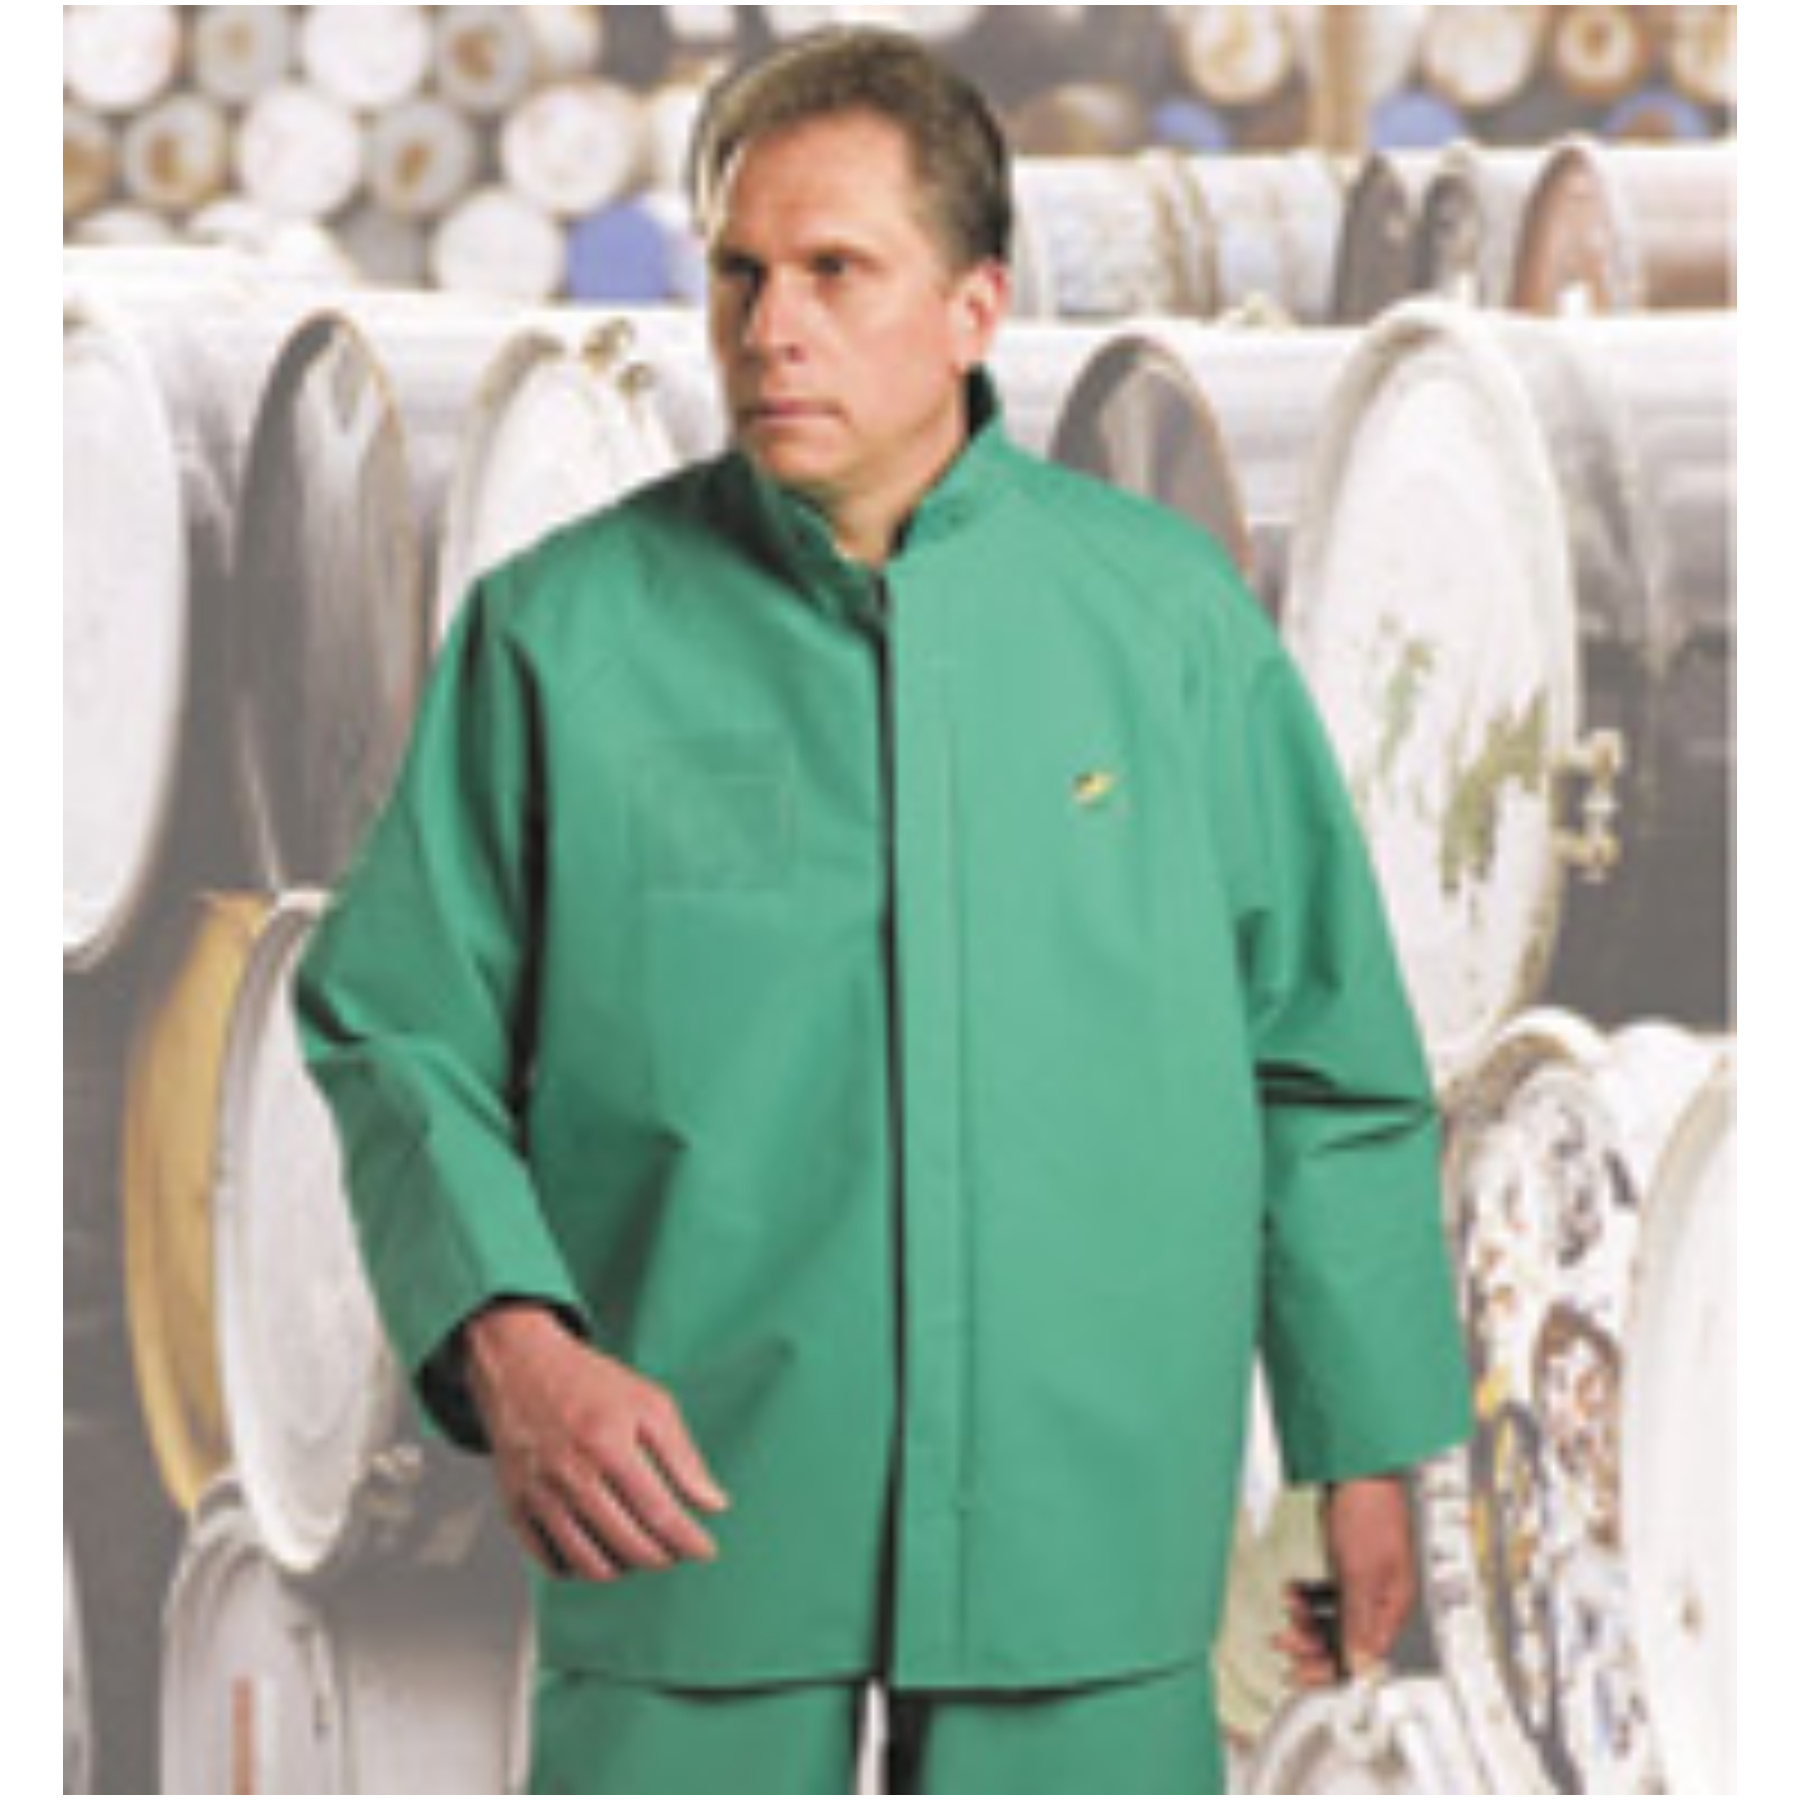 Bata/Onguard 3X Green Chemtex .35MM PVC On Nylon Polyester Chemical Protection Jacket With Hood Snaps